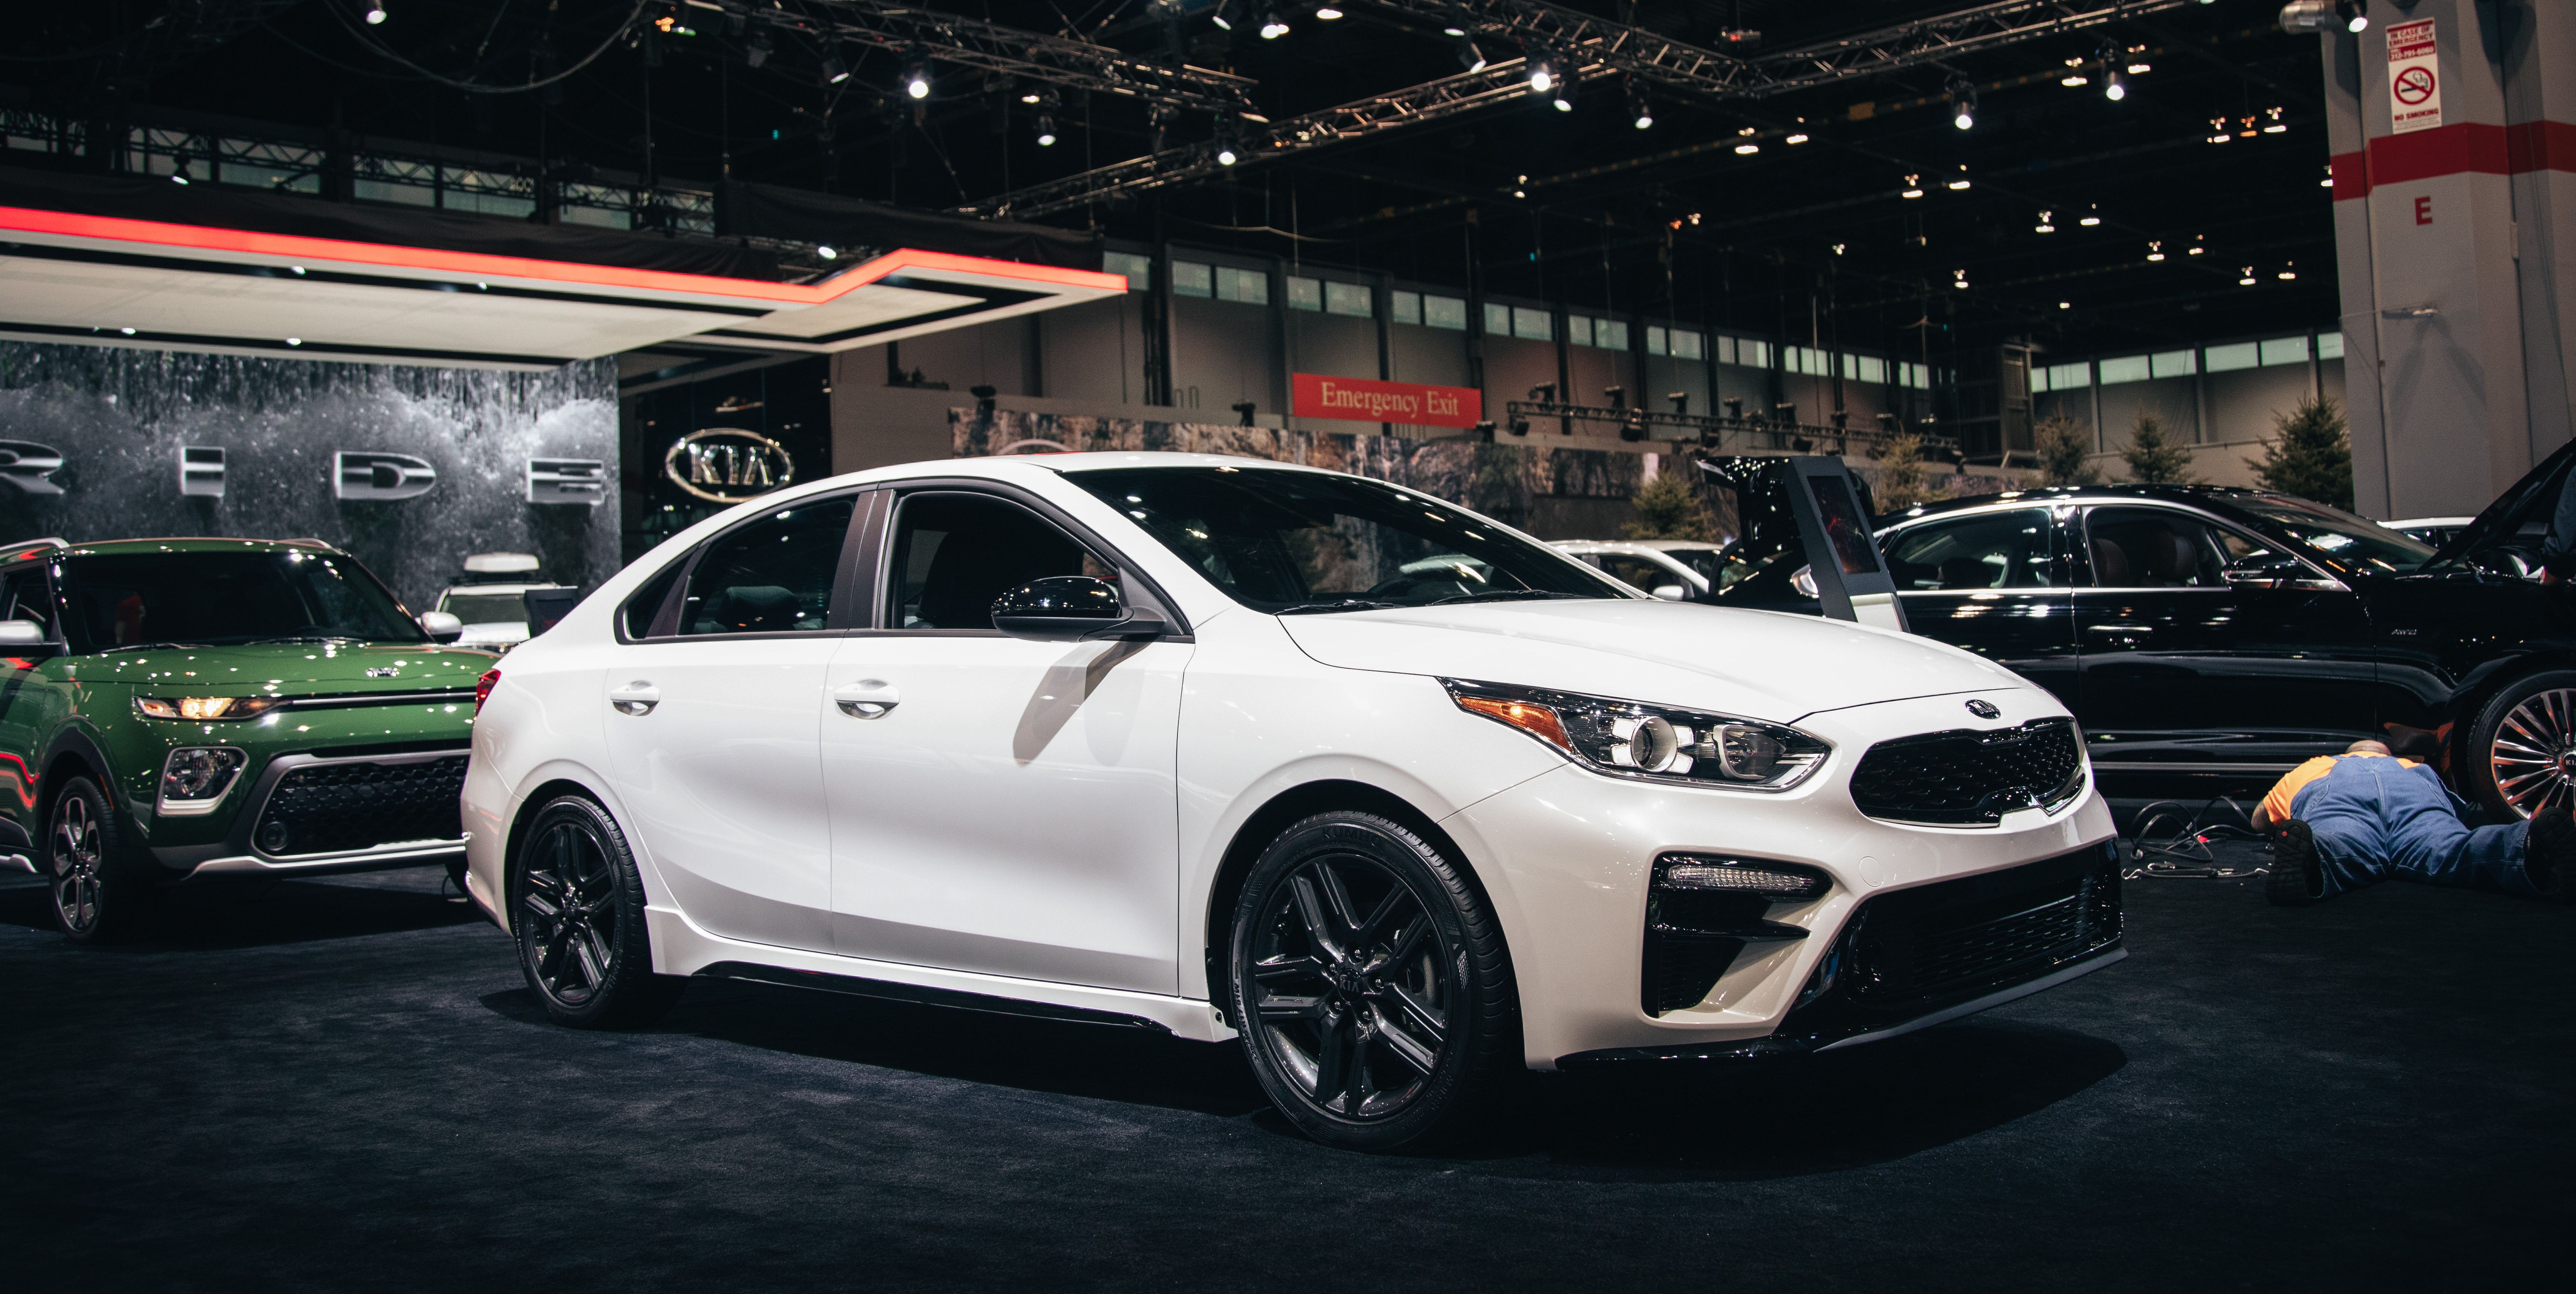 2020 Kia Forte GT-Line – Compact Sedan Gets Visual Tweaks